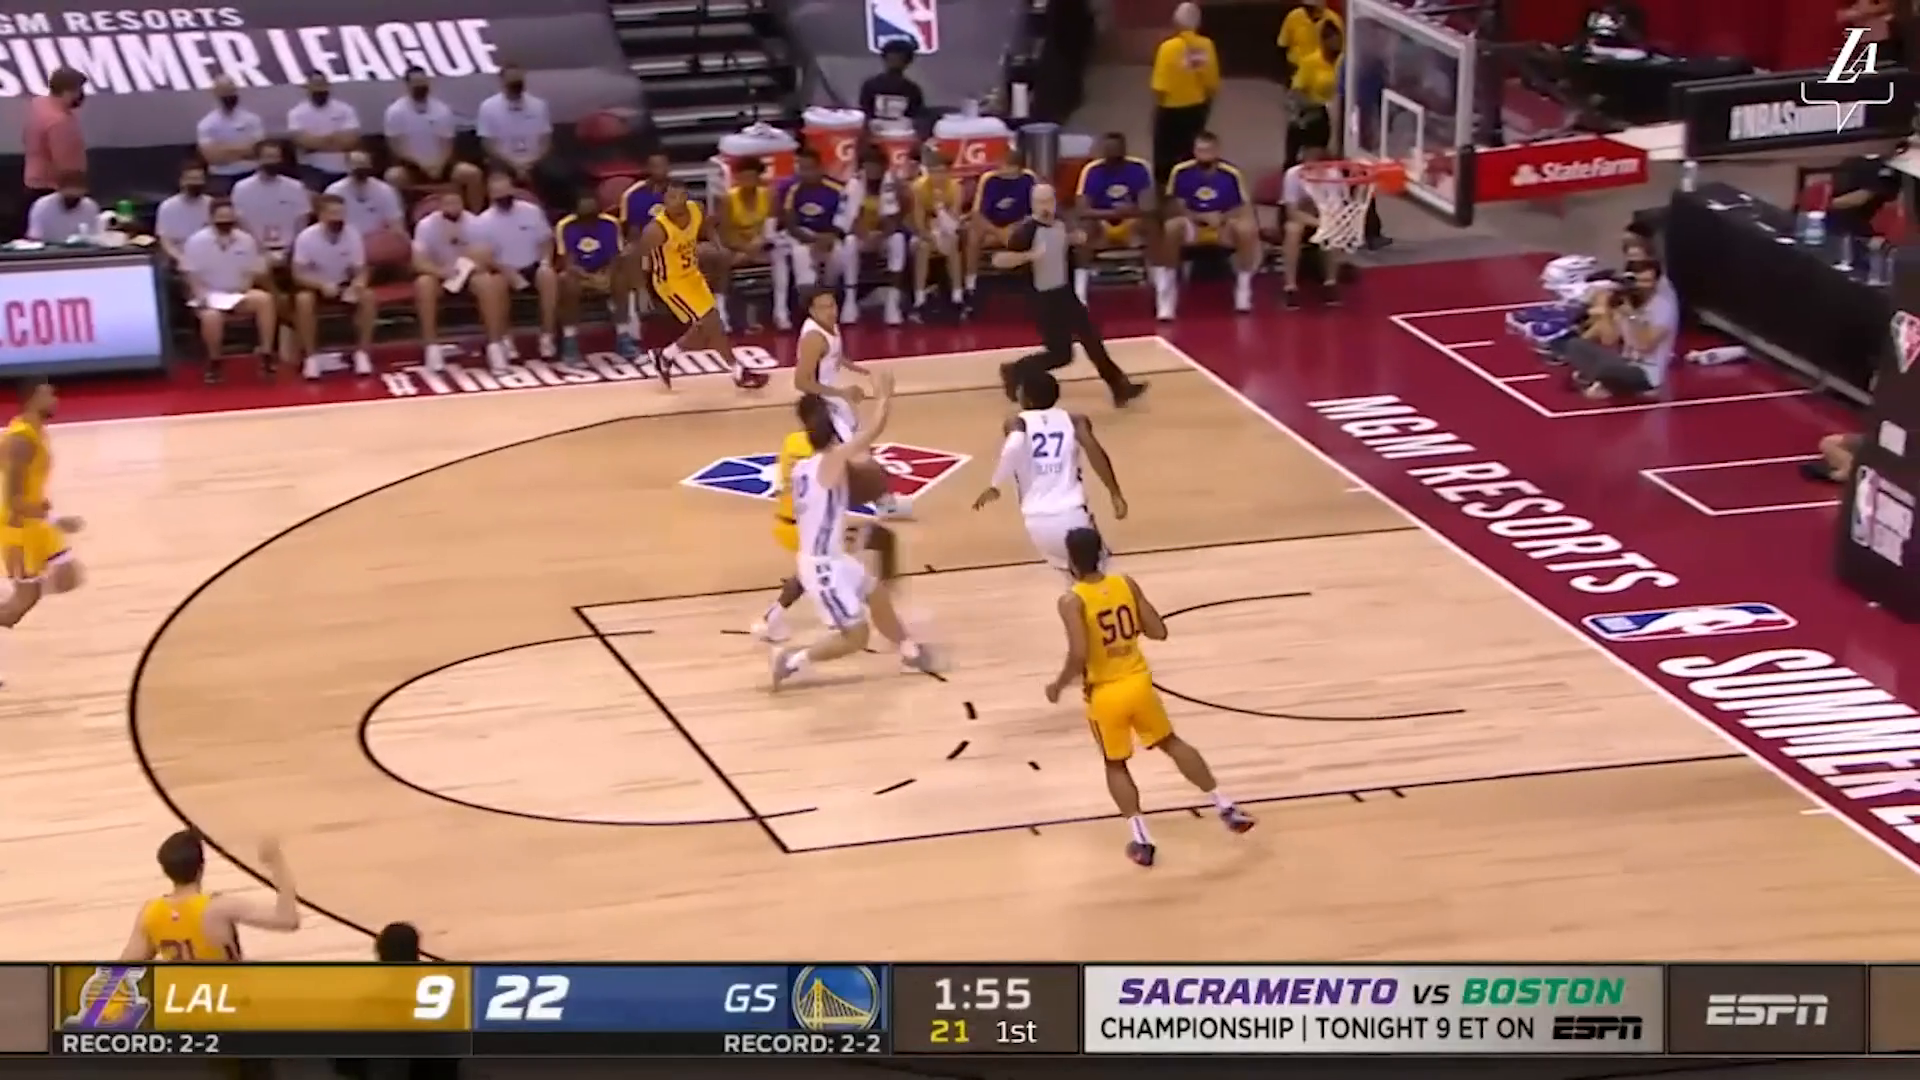 HIGHLIGHTS   Trevelin Queen (21 pts, 5 reb, 4 stl) vs Golden State Warriors   Lakers Summer